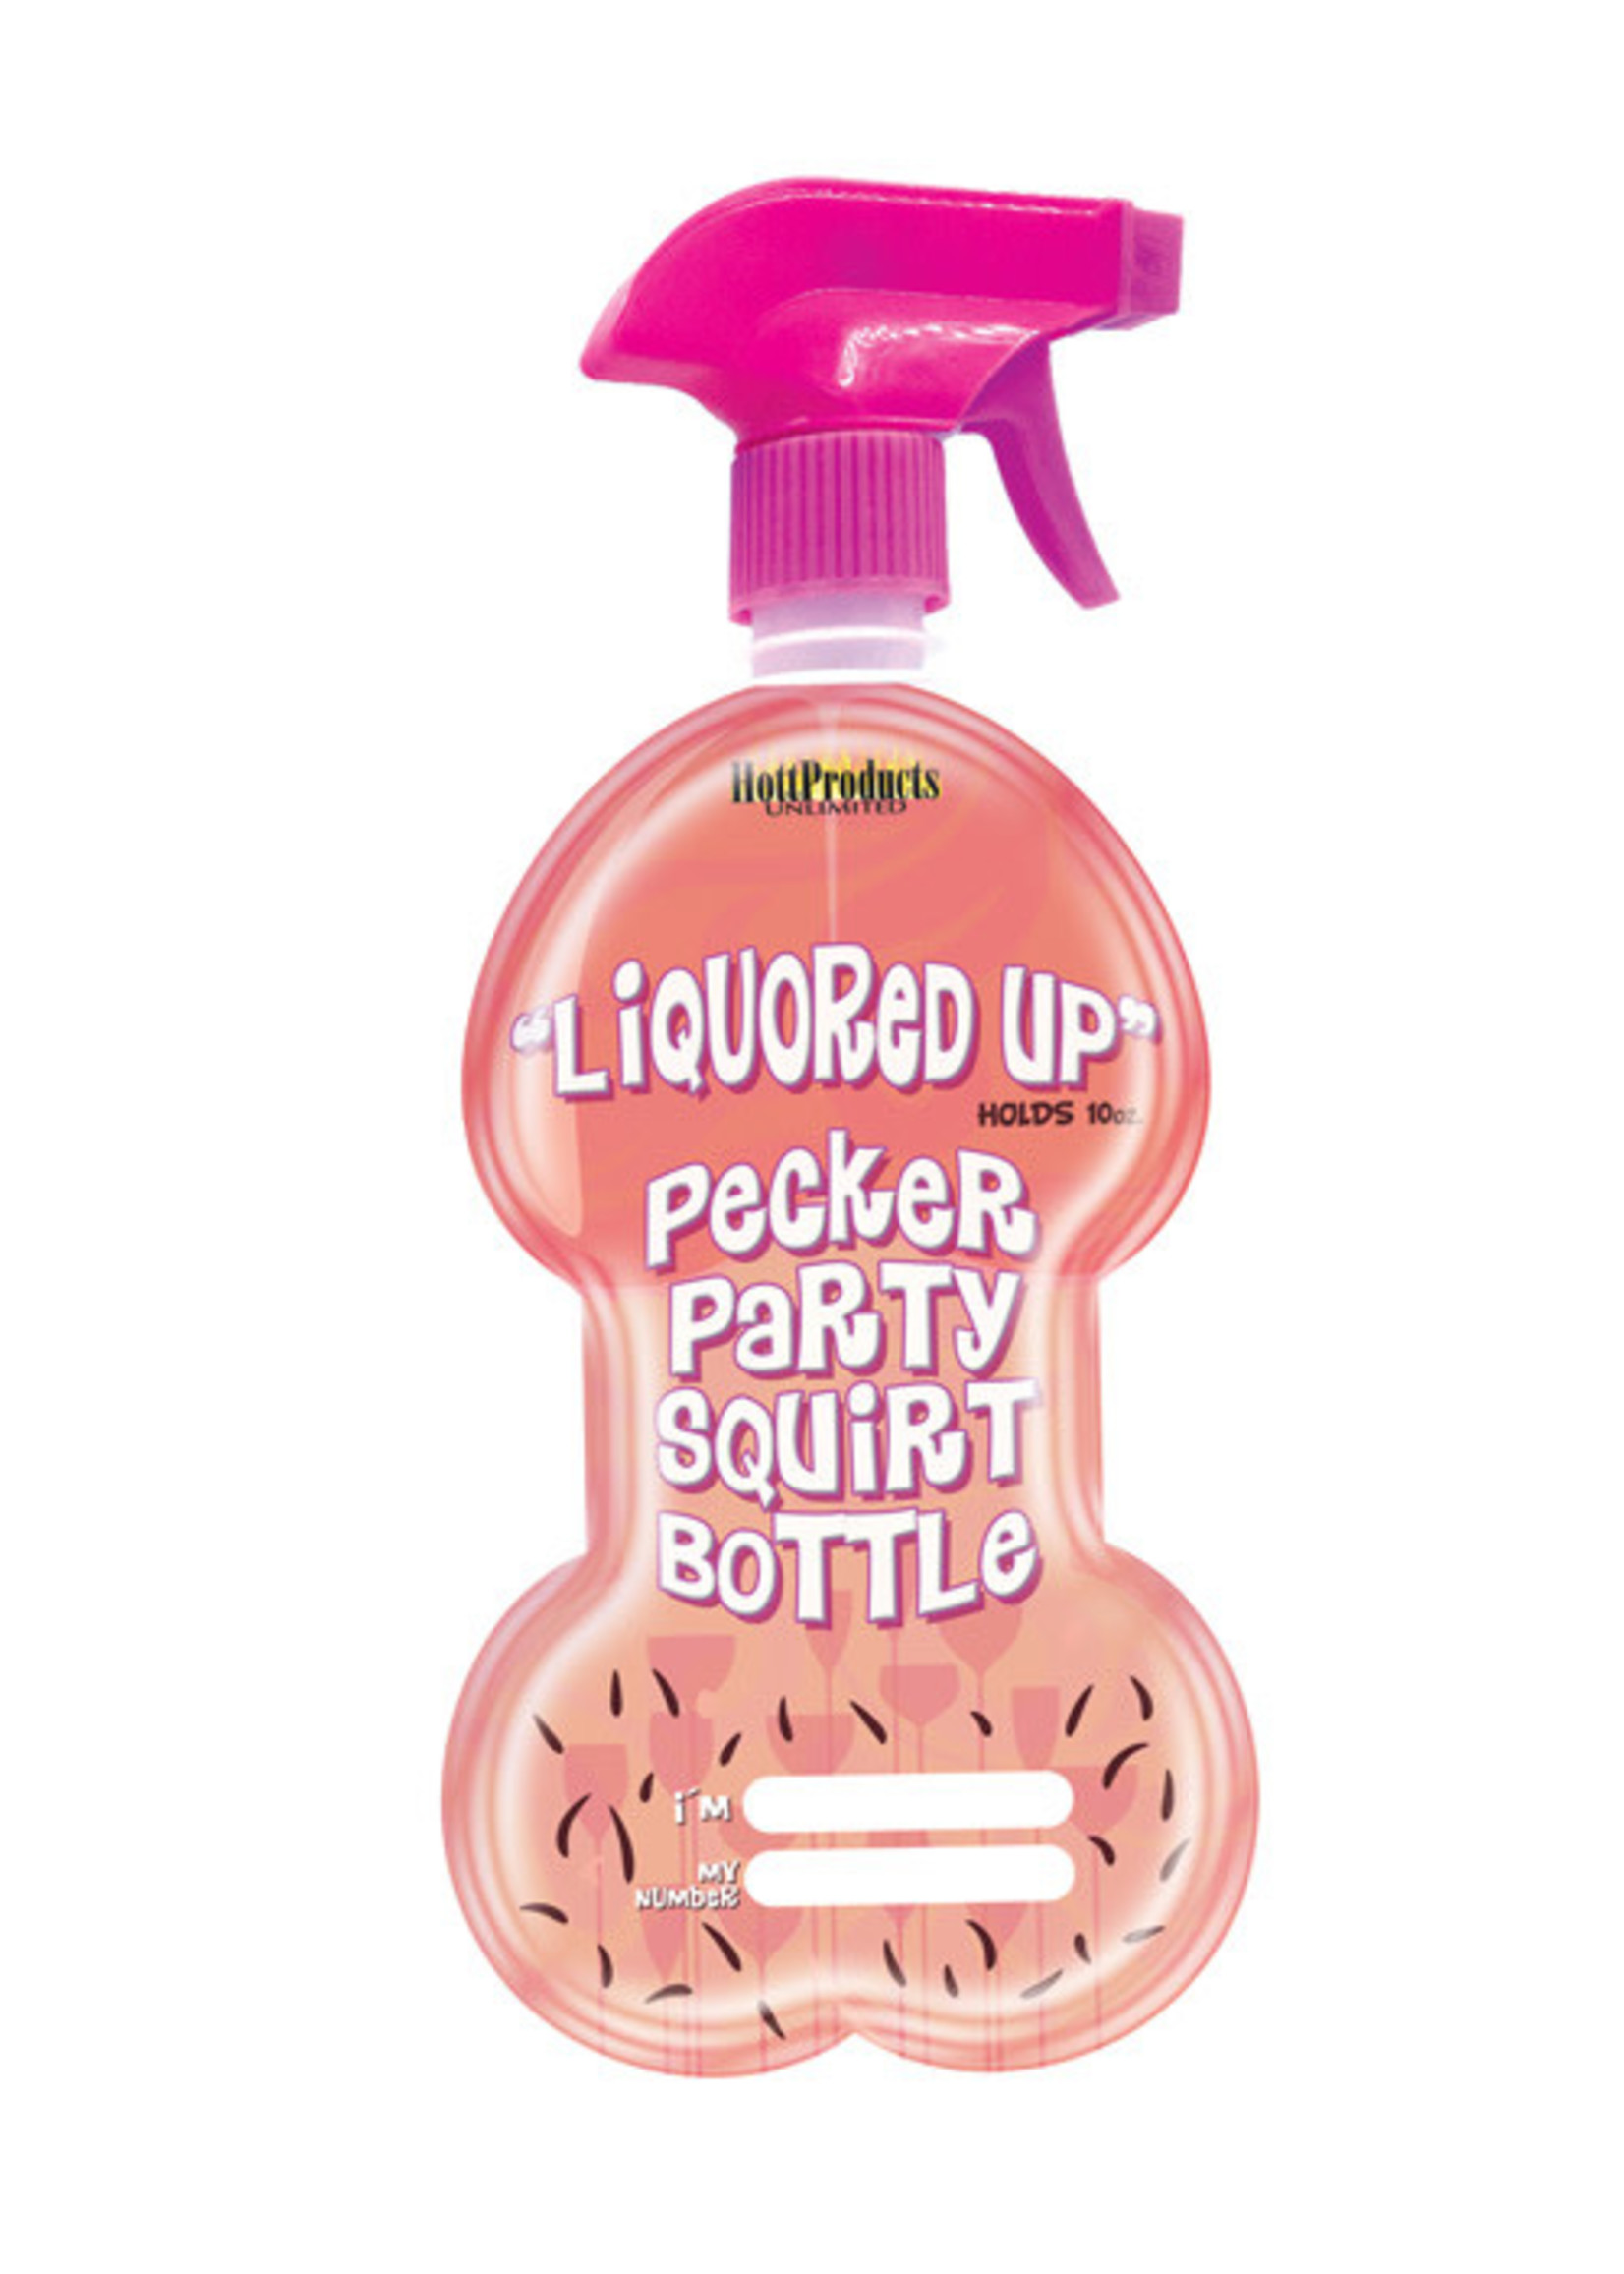 Liquored Up Pecker Party Squirt Bottle - Naughty Time